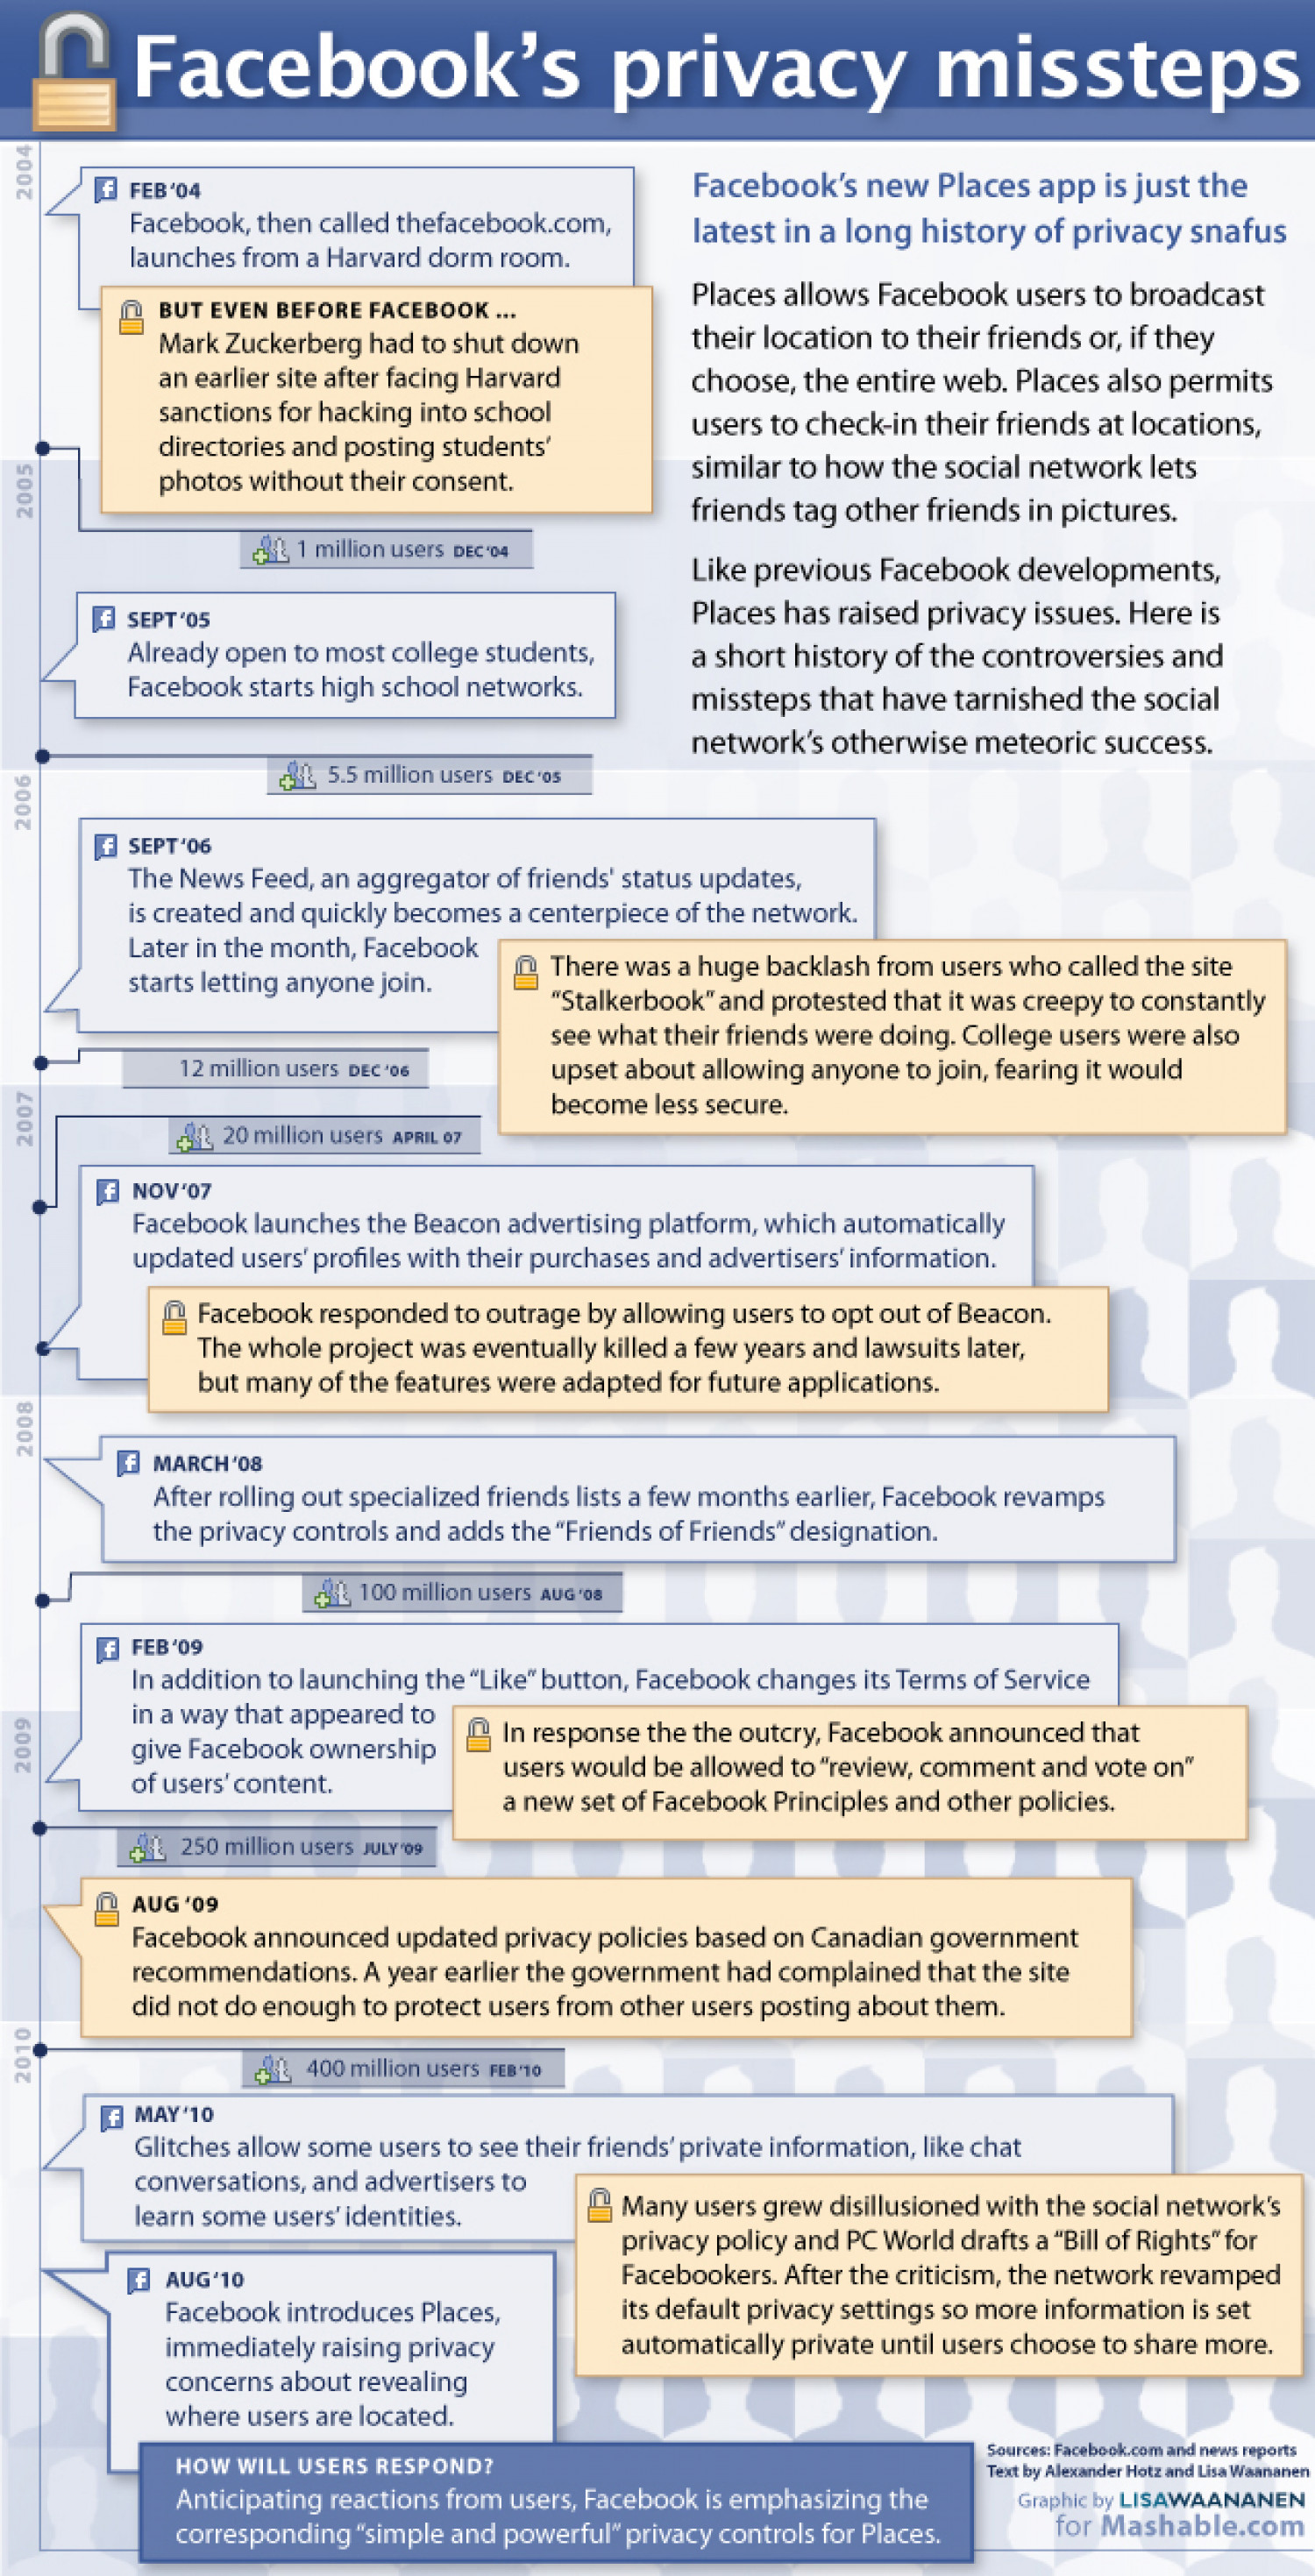 Facebook's Privacy Missteps Infographic